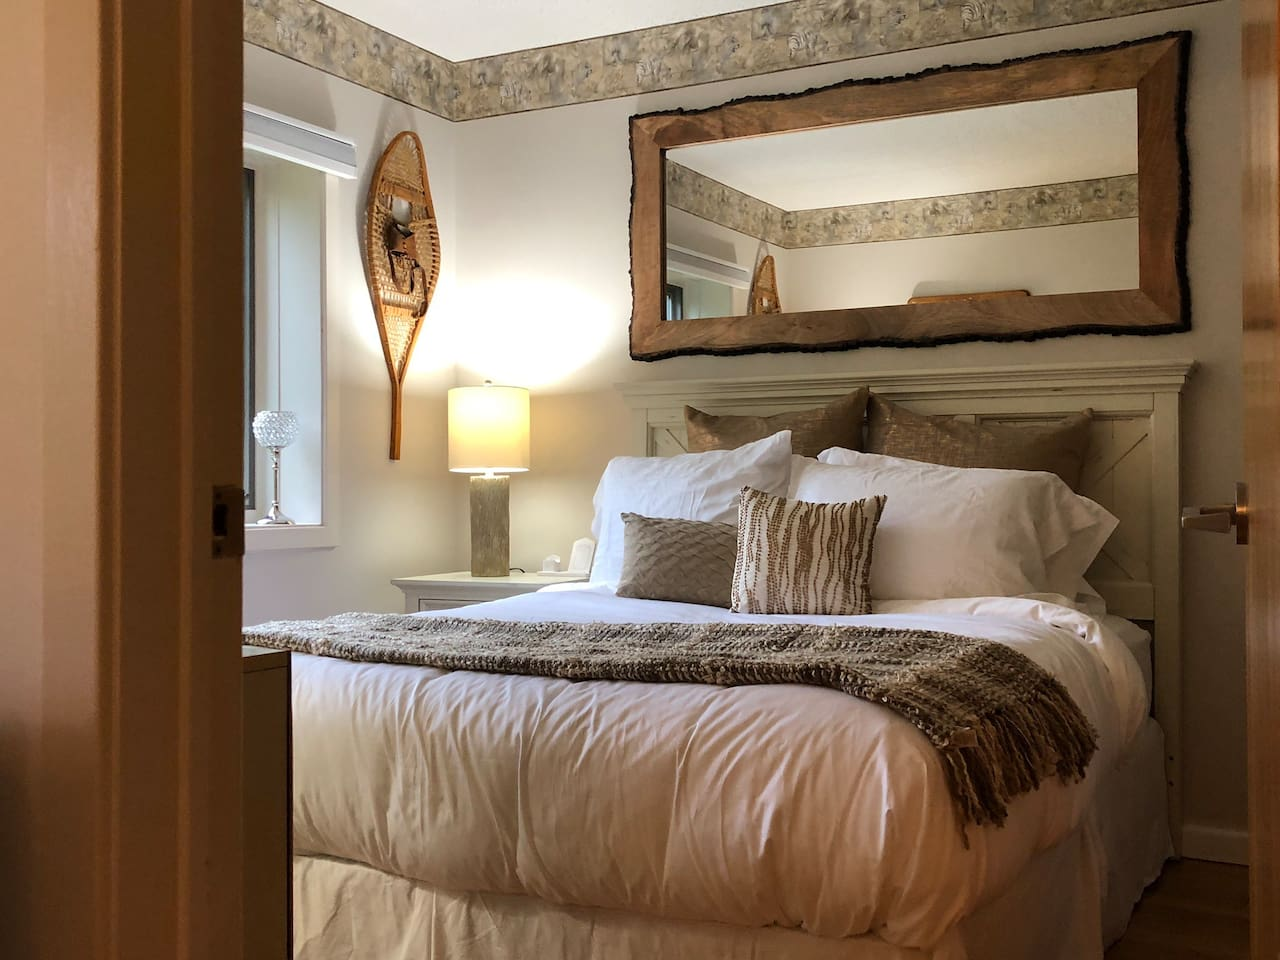 Newly renovated bedroom. Includes dresser, room darkening, easy open shade, 2 large windows, closet, and smaller secondary TV.